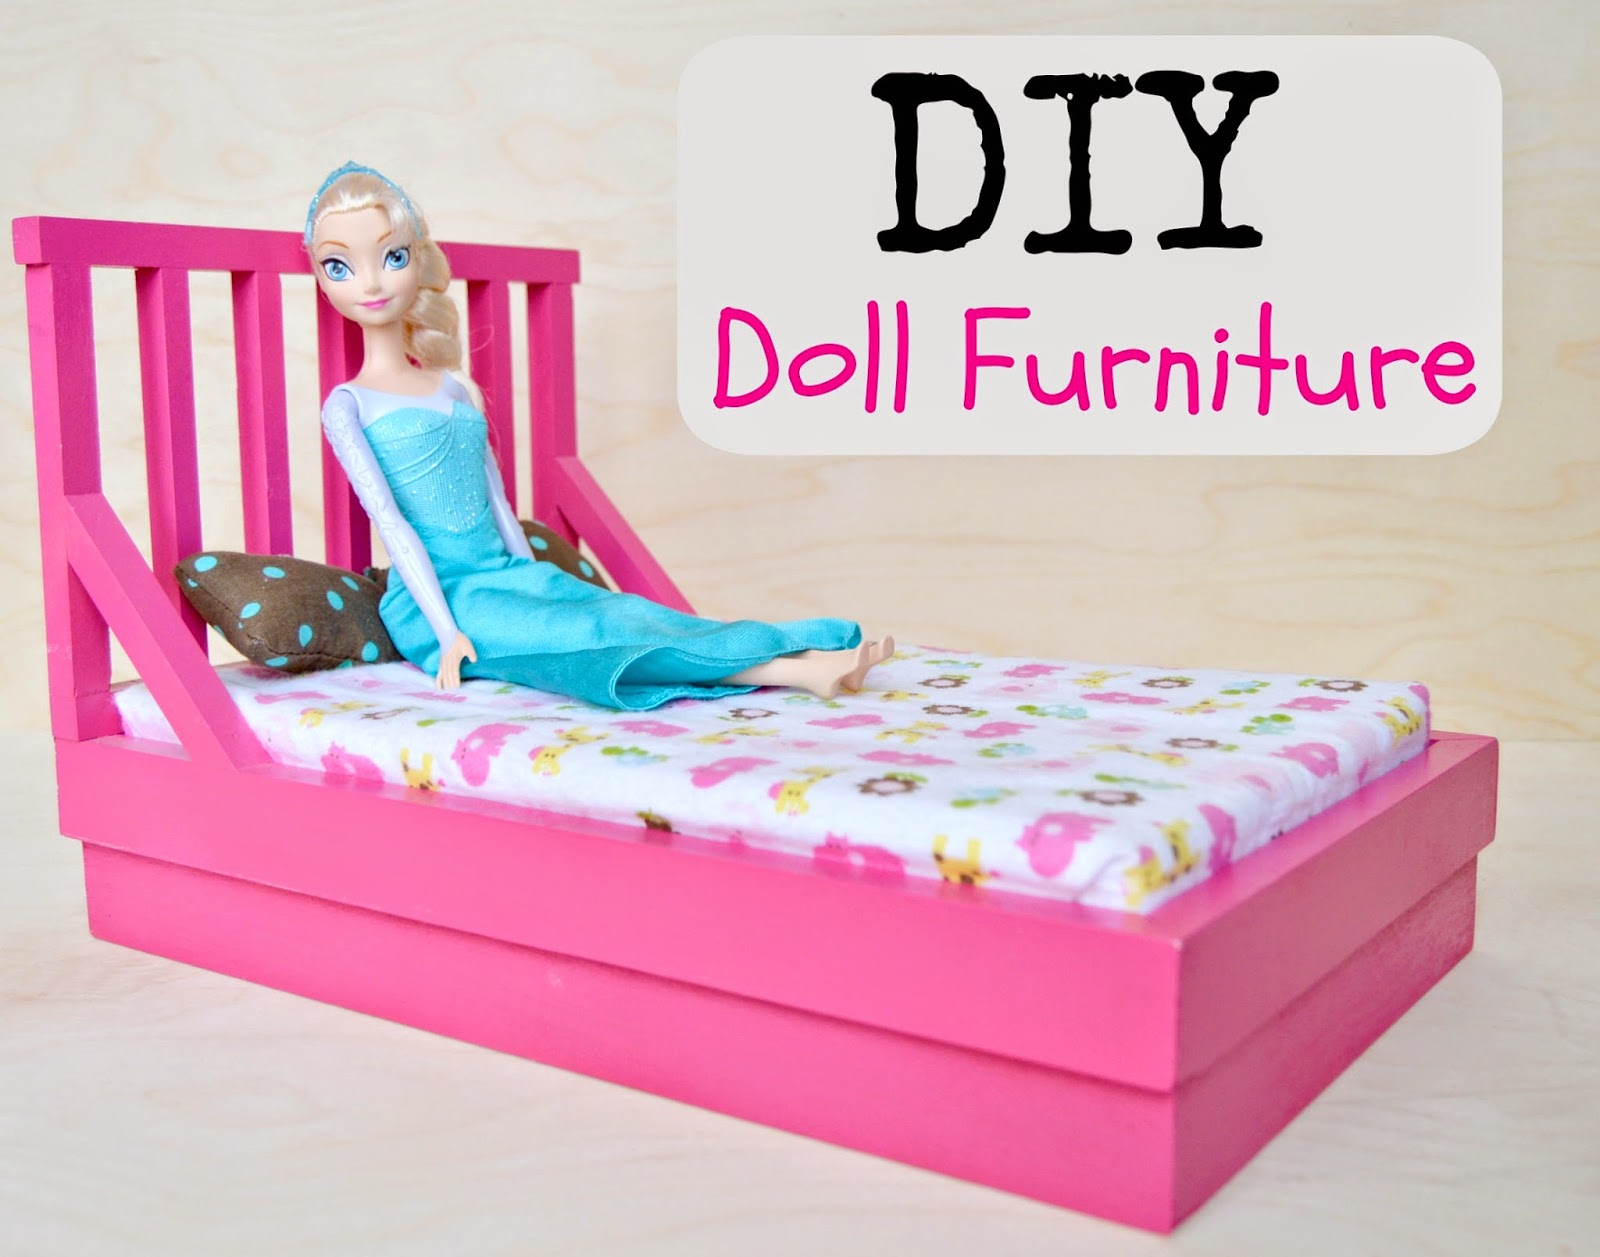 homemade barbie furniture ideas. DIY Dollhouse Furniture Homemade Barbie Ideas Kruse\u0027s Workshop